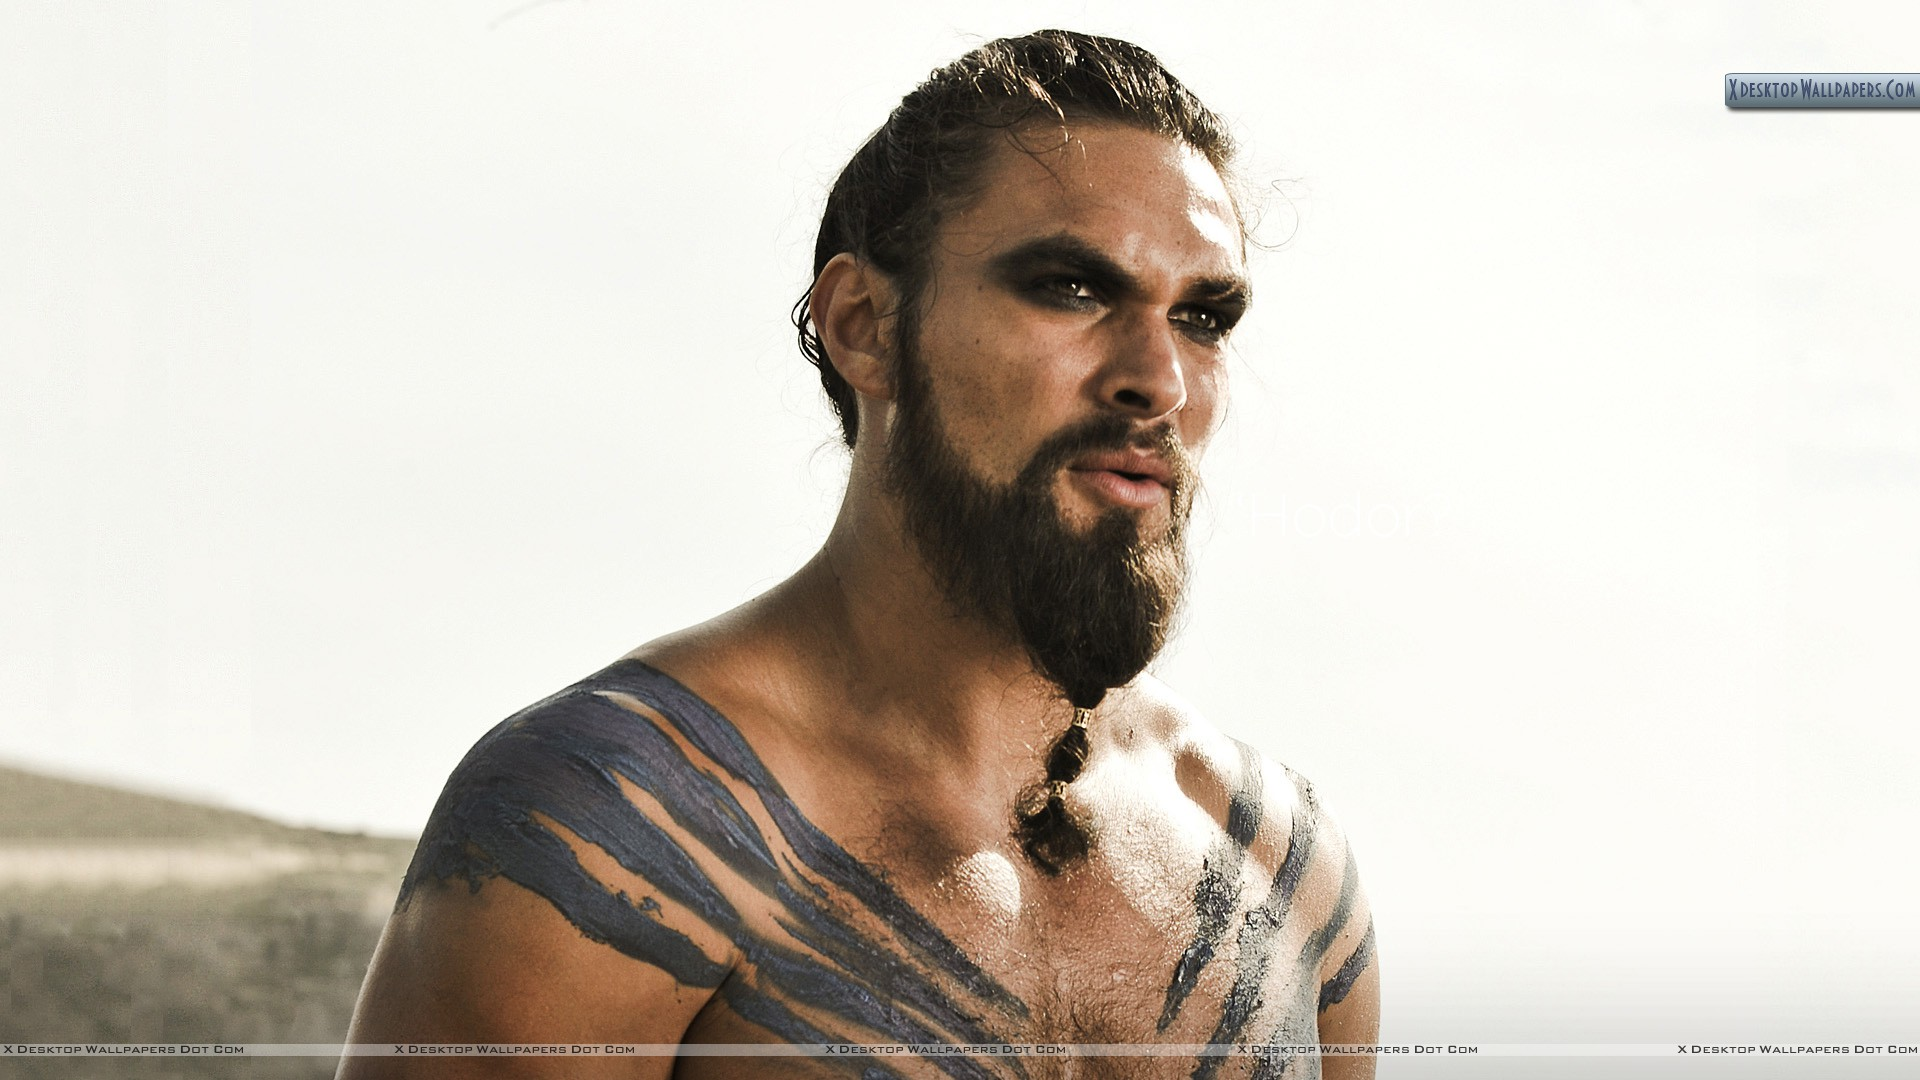 Game Of Thrones Jason Momoa Looking Side Photoshoot Wallpaper 1920x1080